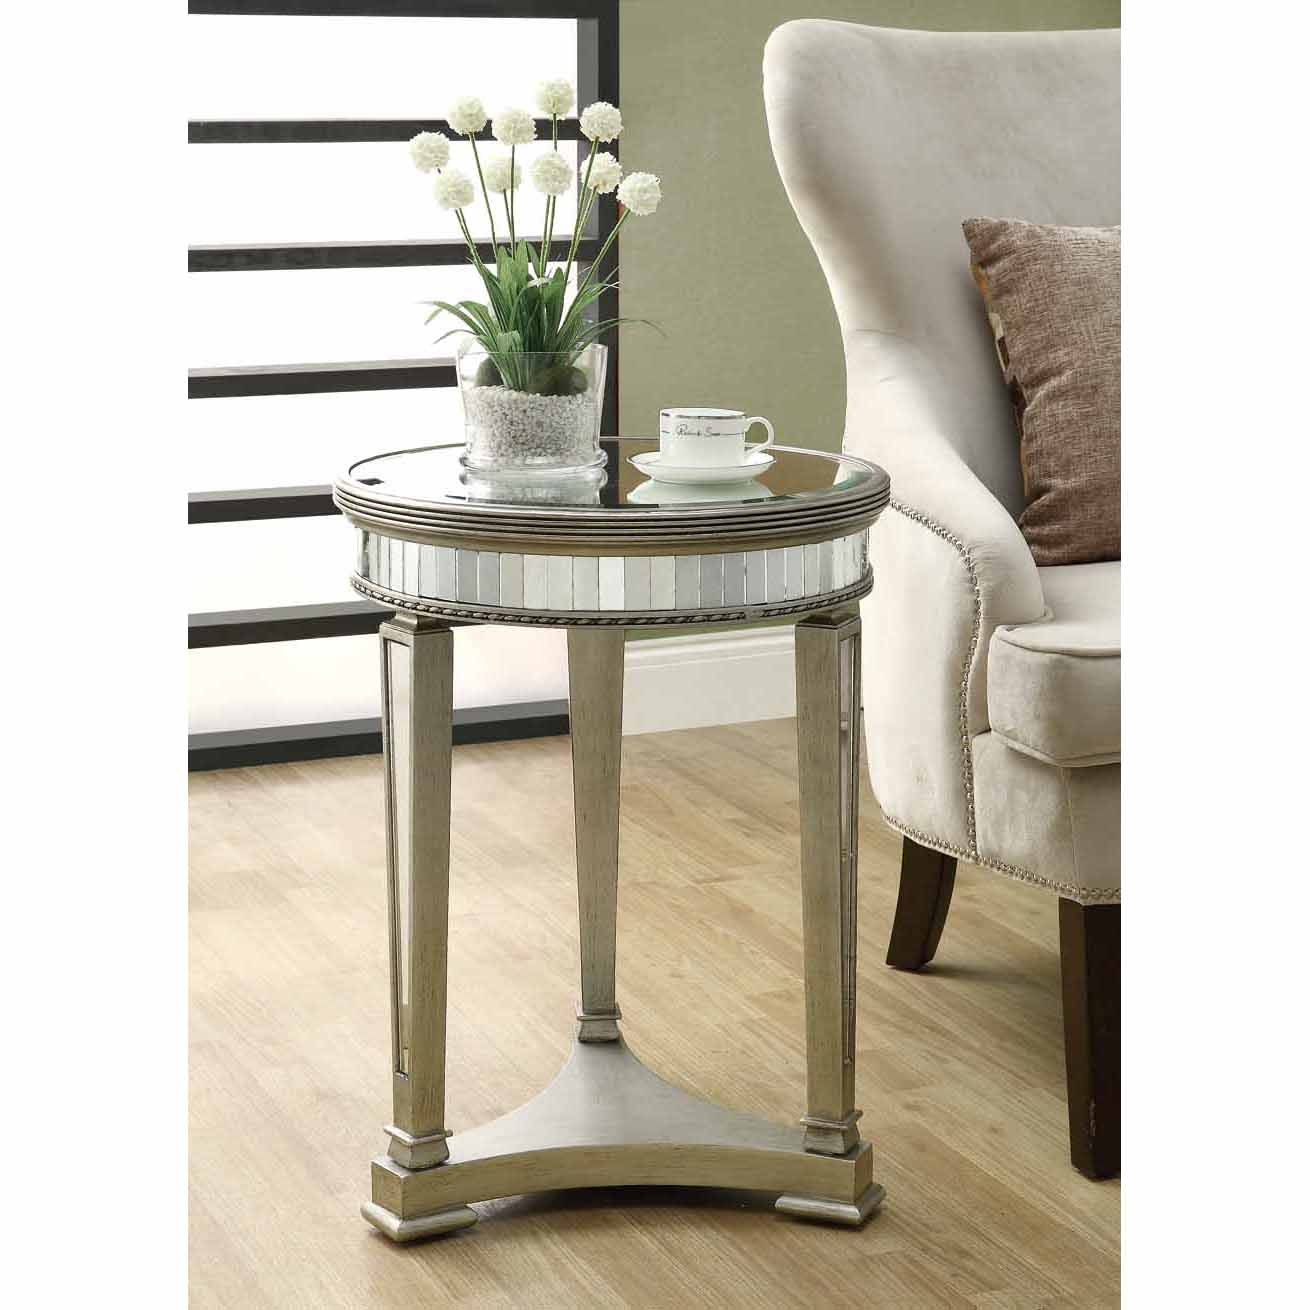 Mirrored 20-inch Dia Accent Table